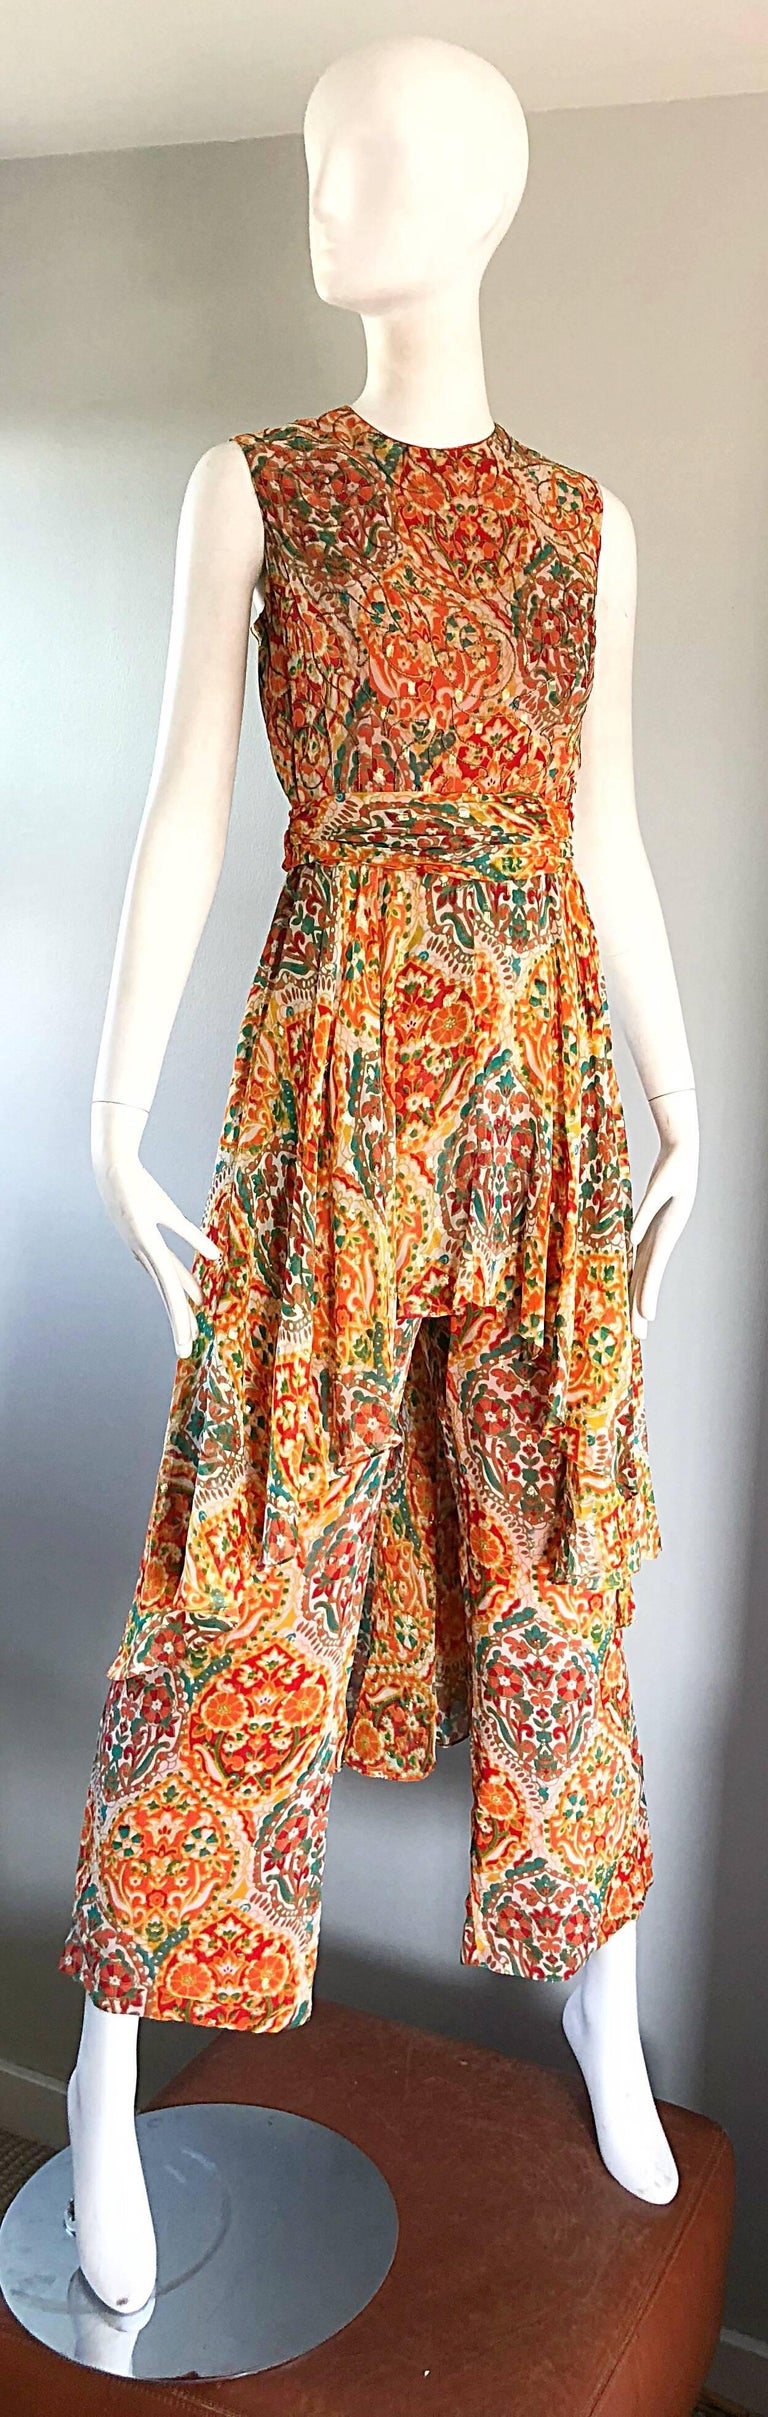 Amazing 70s OSCAR DE LA RENTA silk wide leg boho batik print jumpsuit, with attached skirt! Features vibrant colors of orange, green, brown, burgundy, yellow throughout. Fitted bodice features gold silk threading throughout. Wide palazzo legs. Full